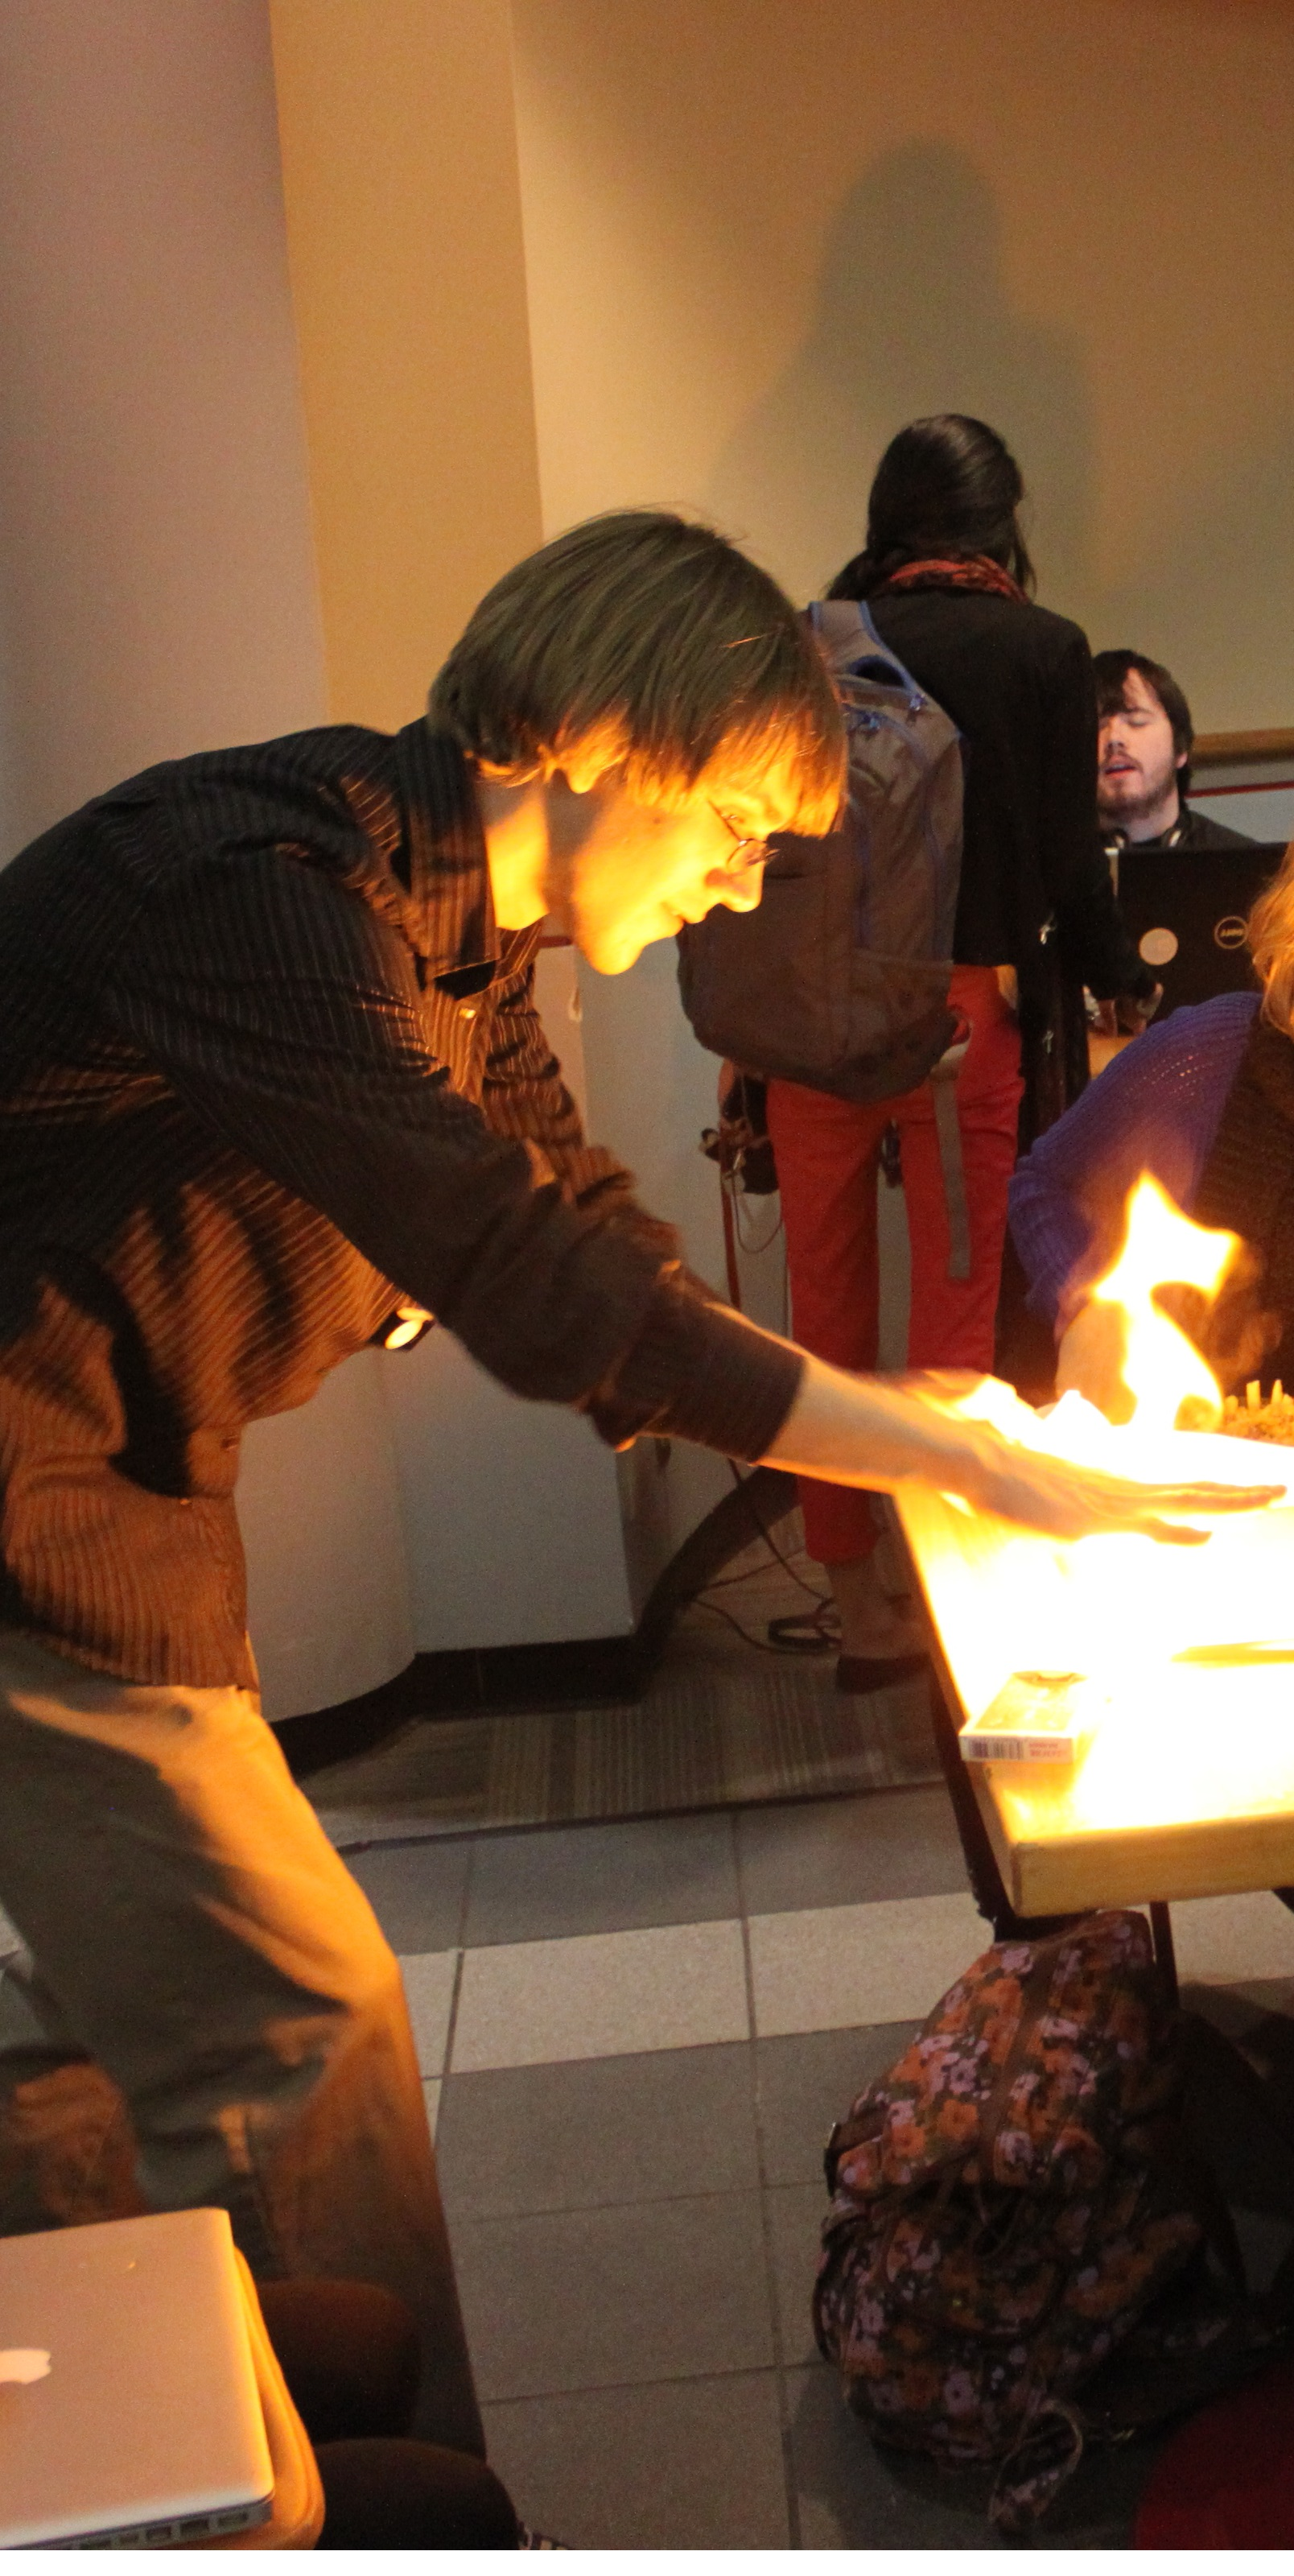 Magic trick with fire